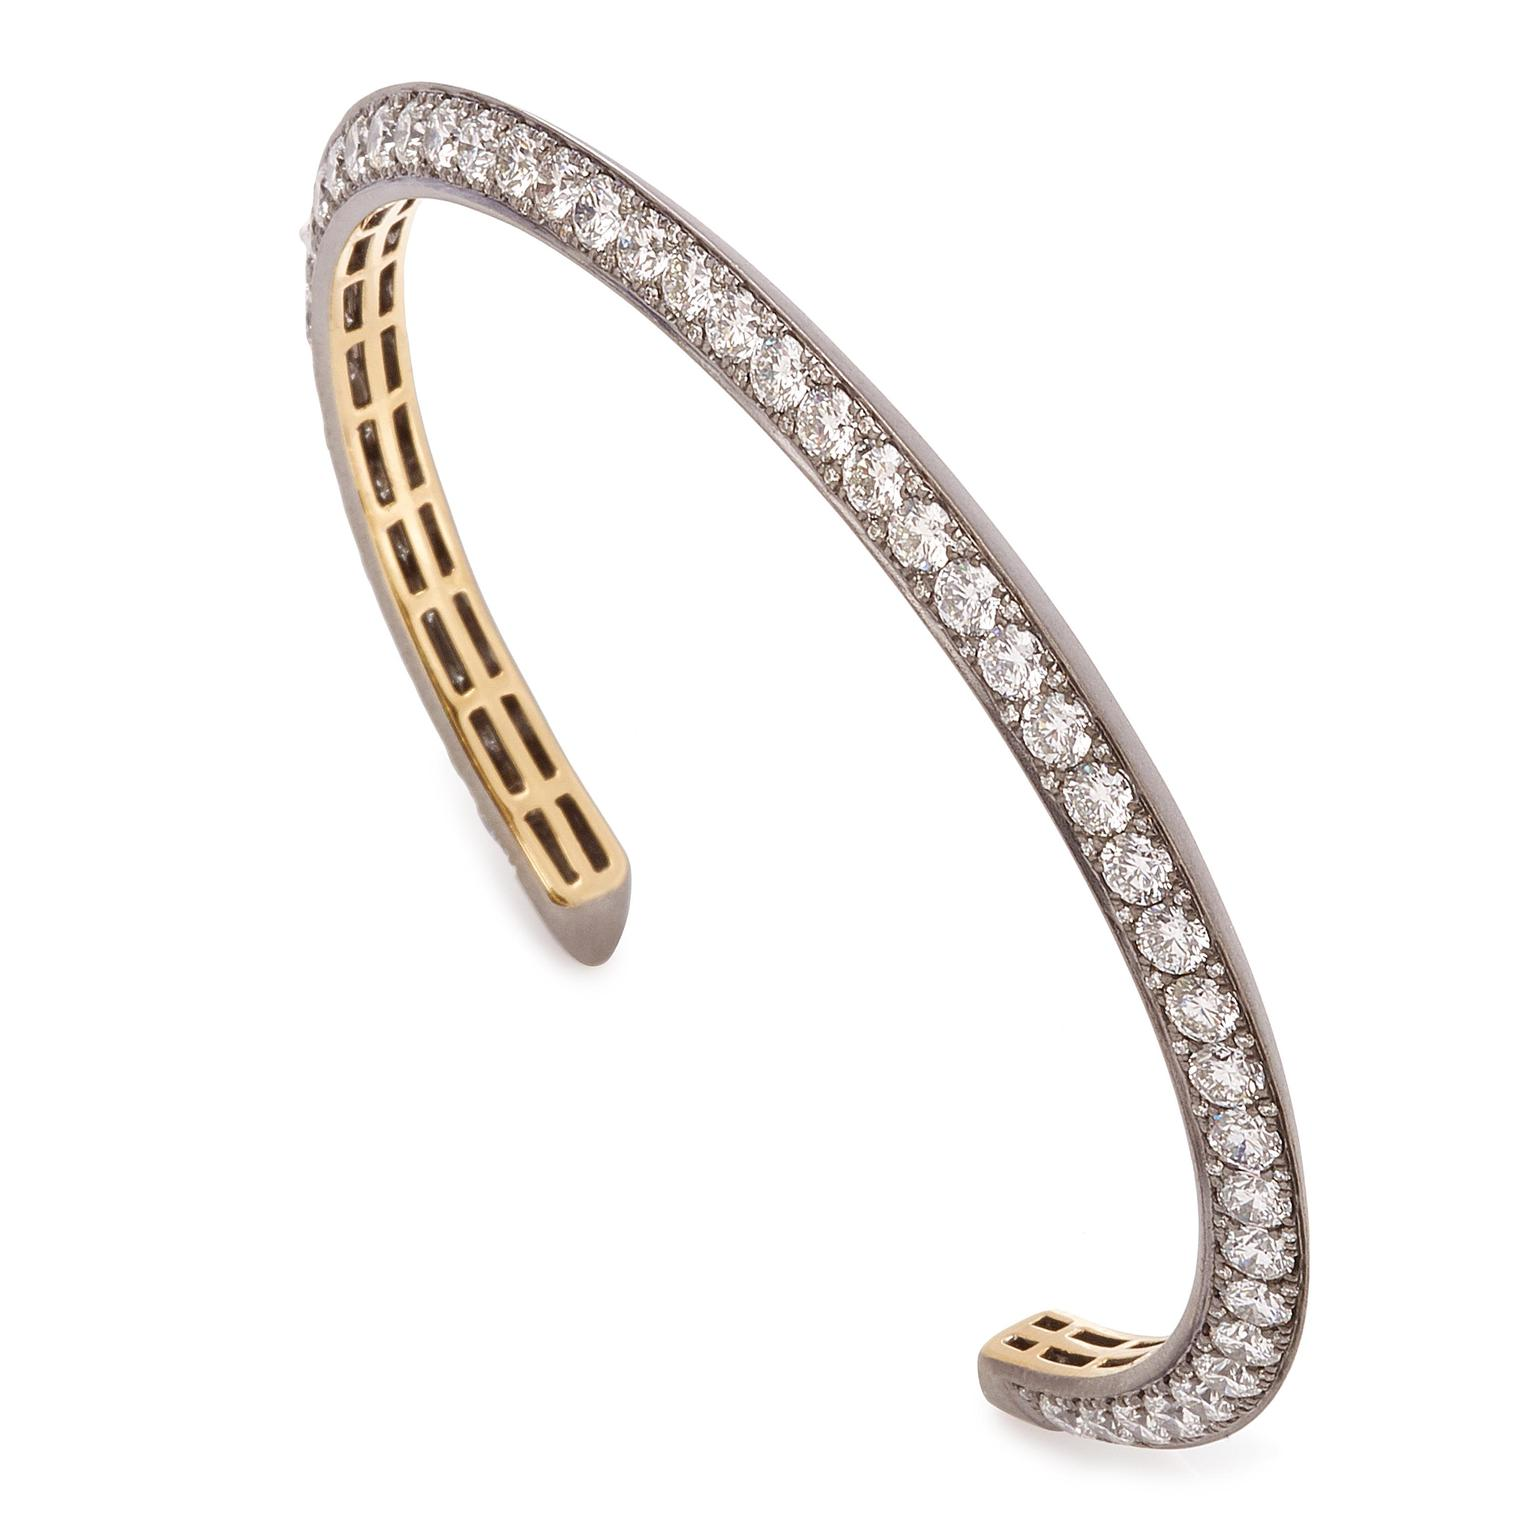 Mr Lieou diamond bracelet